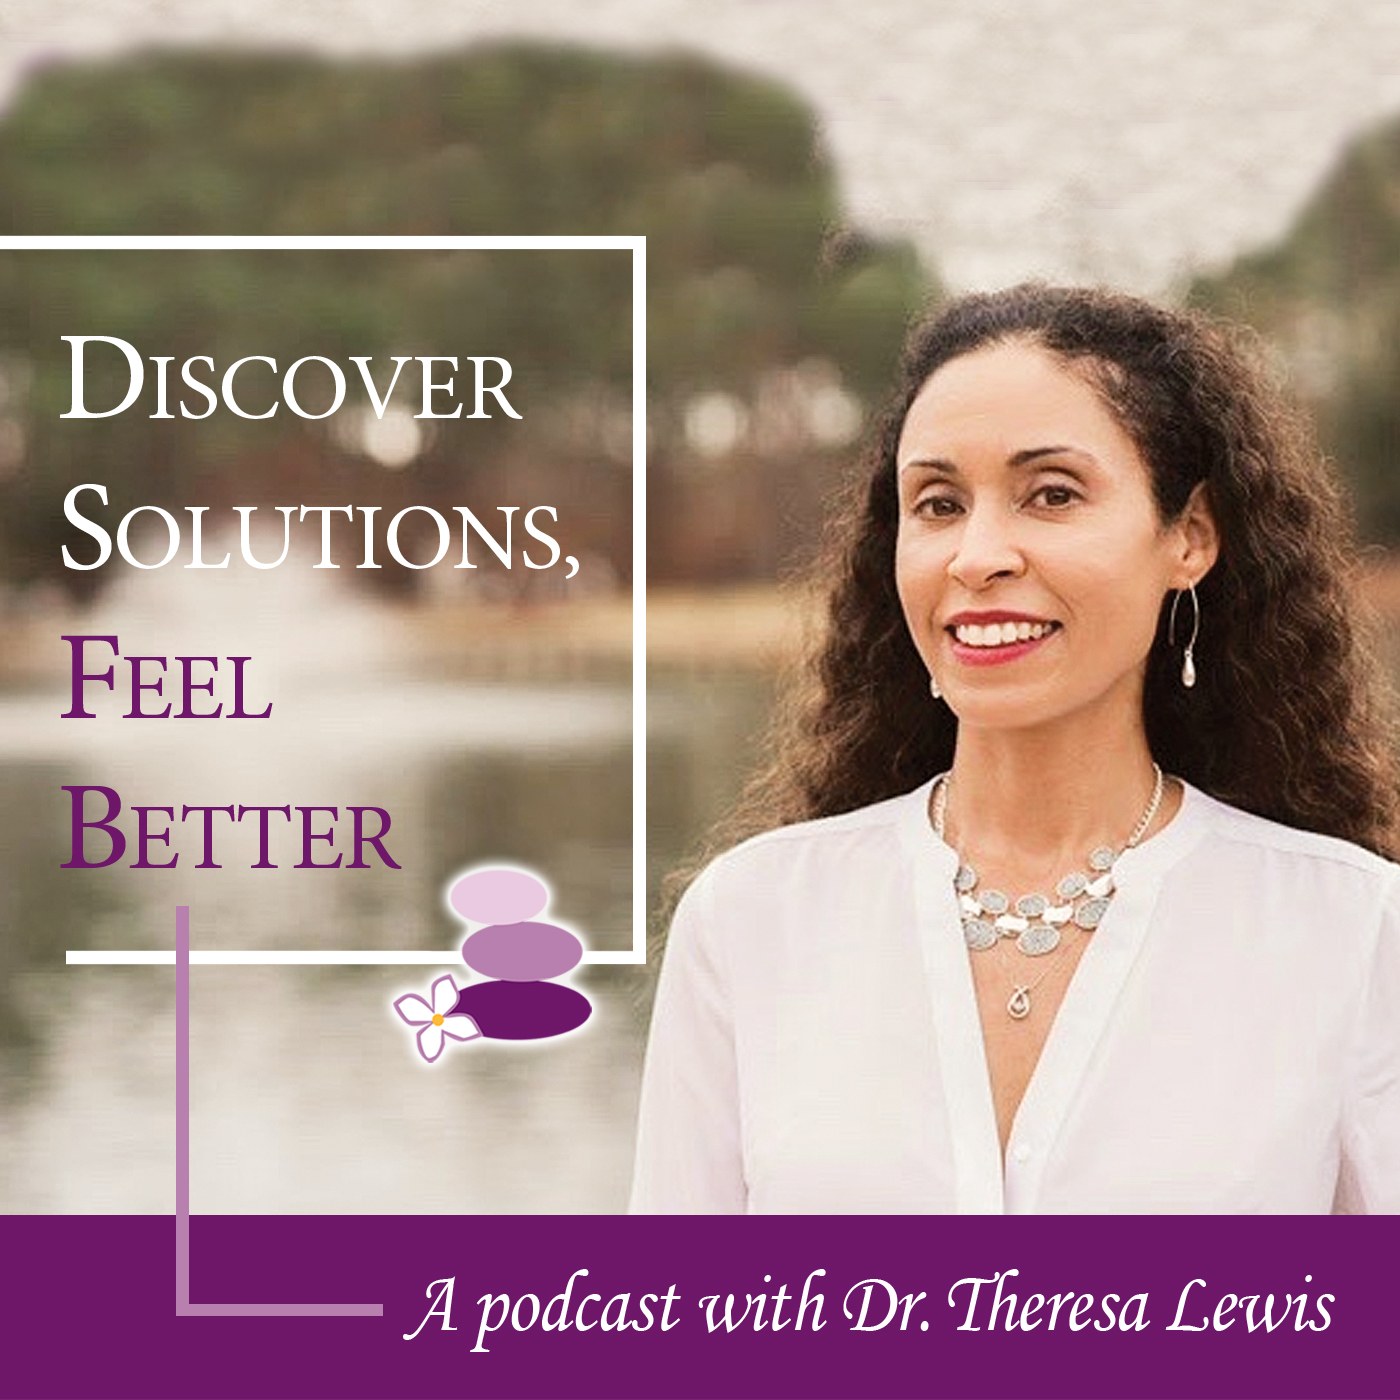 Ep 6: Do You Have Trouble Sleeping? These Natural Methods Can Help